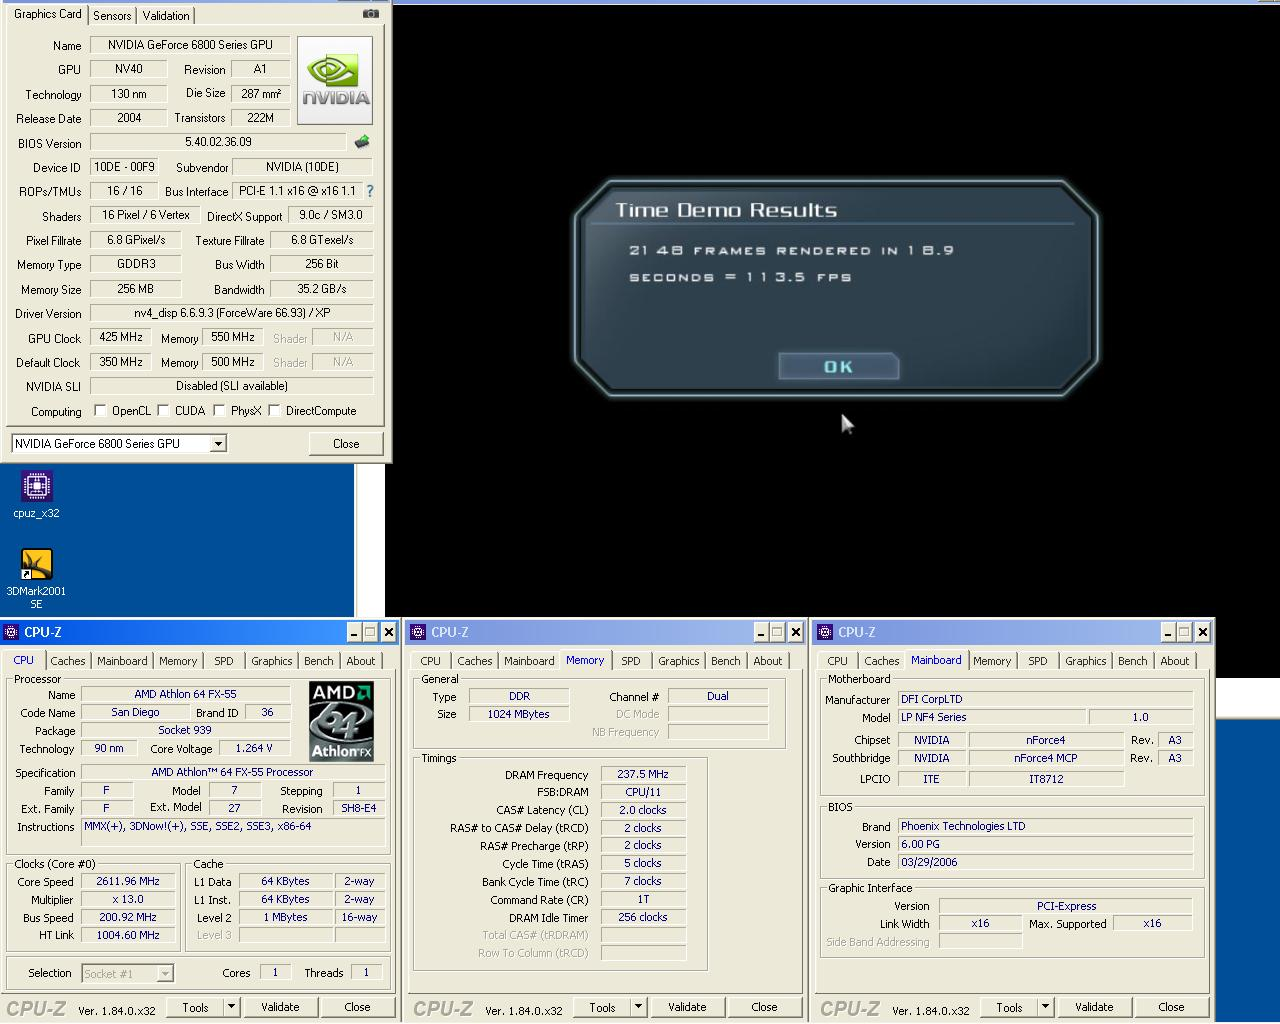 FX55 0.09 um 2x512MB DDR475 2 2 2 5 1T Geforce 6800GT 425 1100 doom3 1024 Ultra.JPG